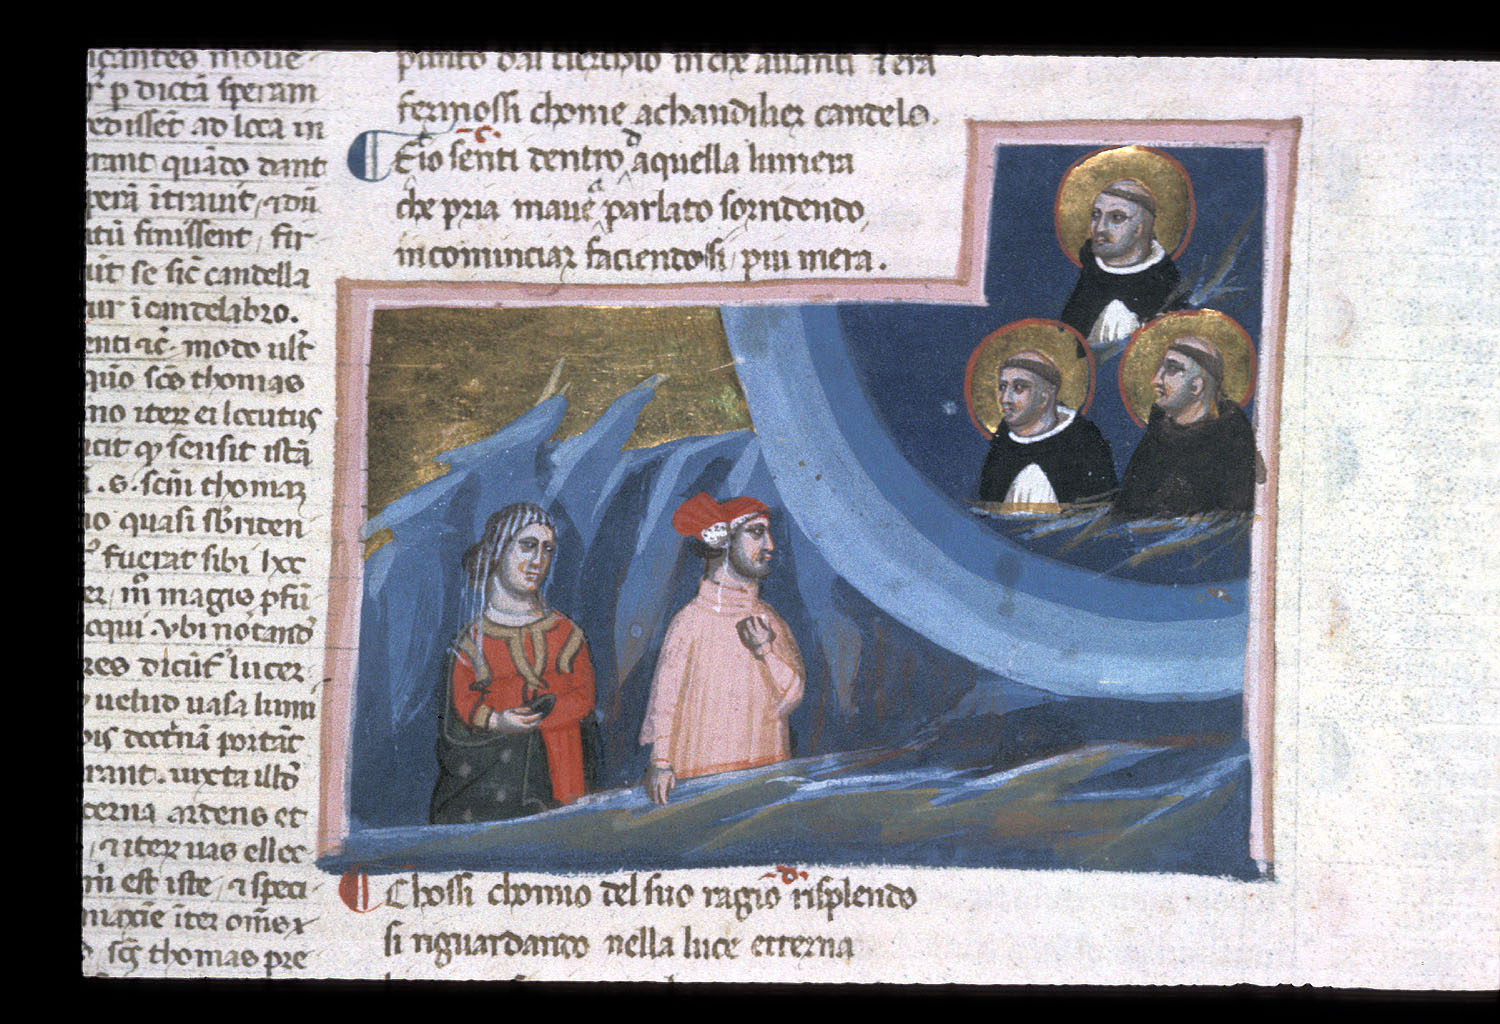 Dominic, Thomas Aquinas, and  Francis in the heaven of the sun